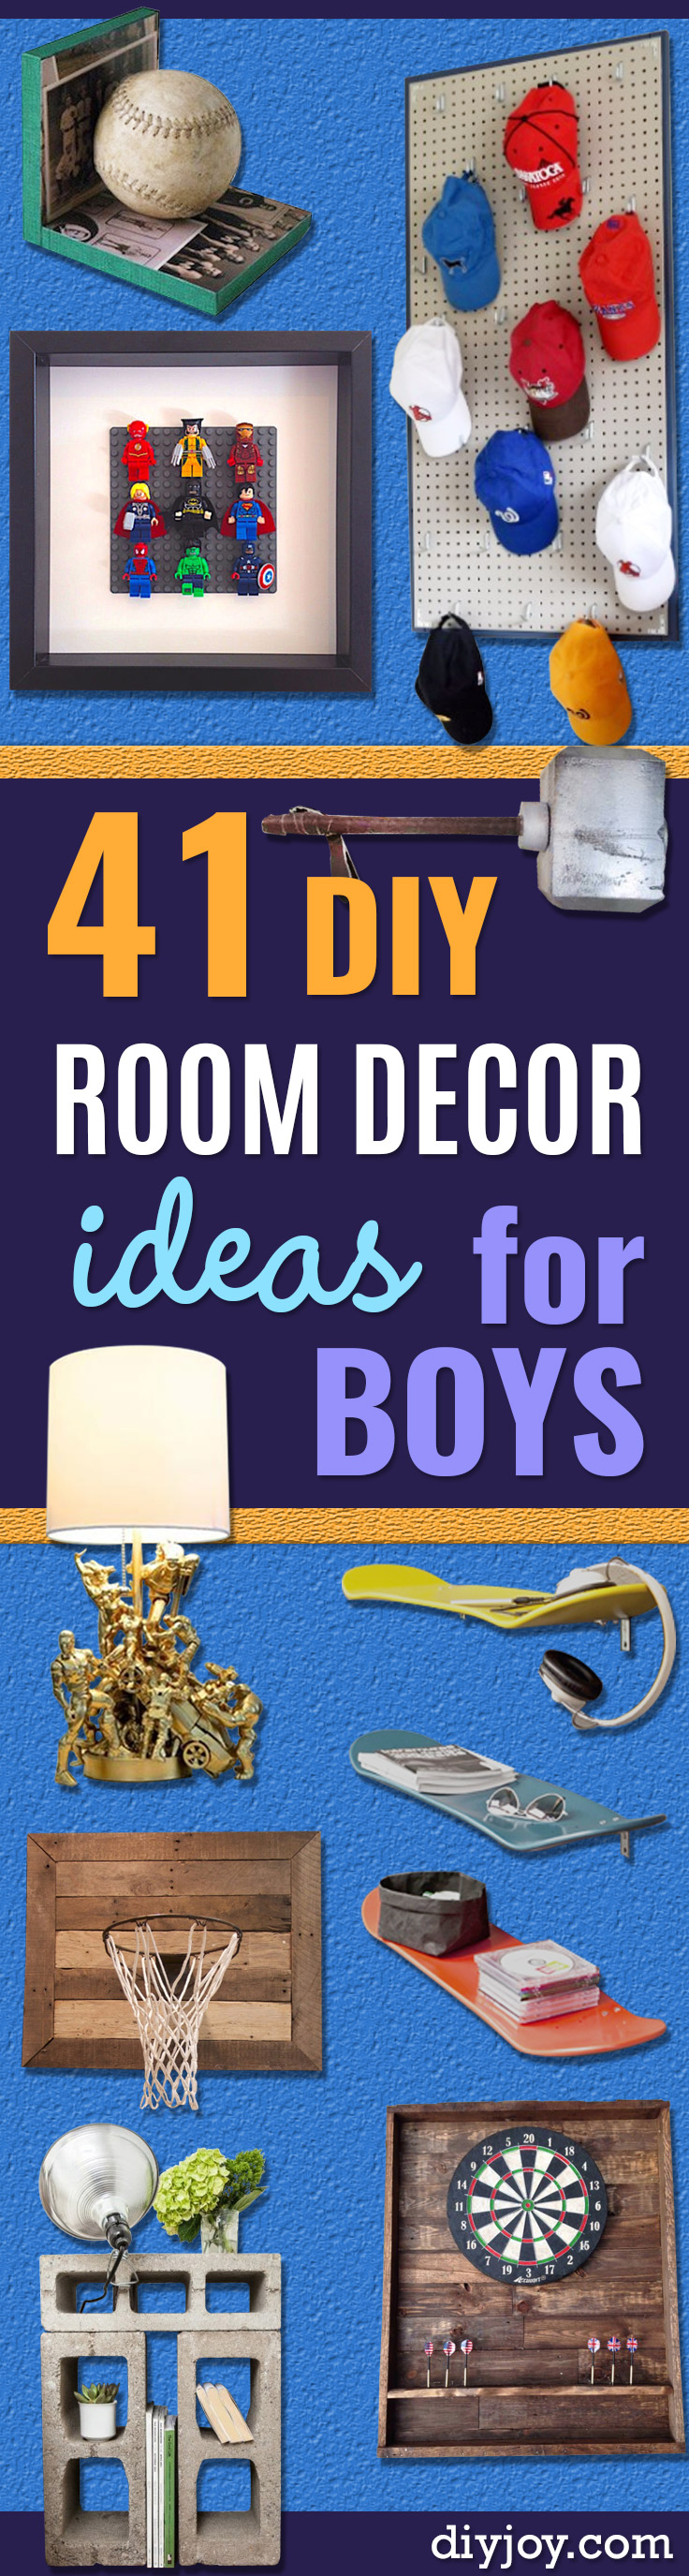 DIY Room Decor Ideas for Boys - 41 Cheap Boy Bedroom Decor ...